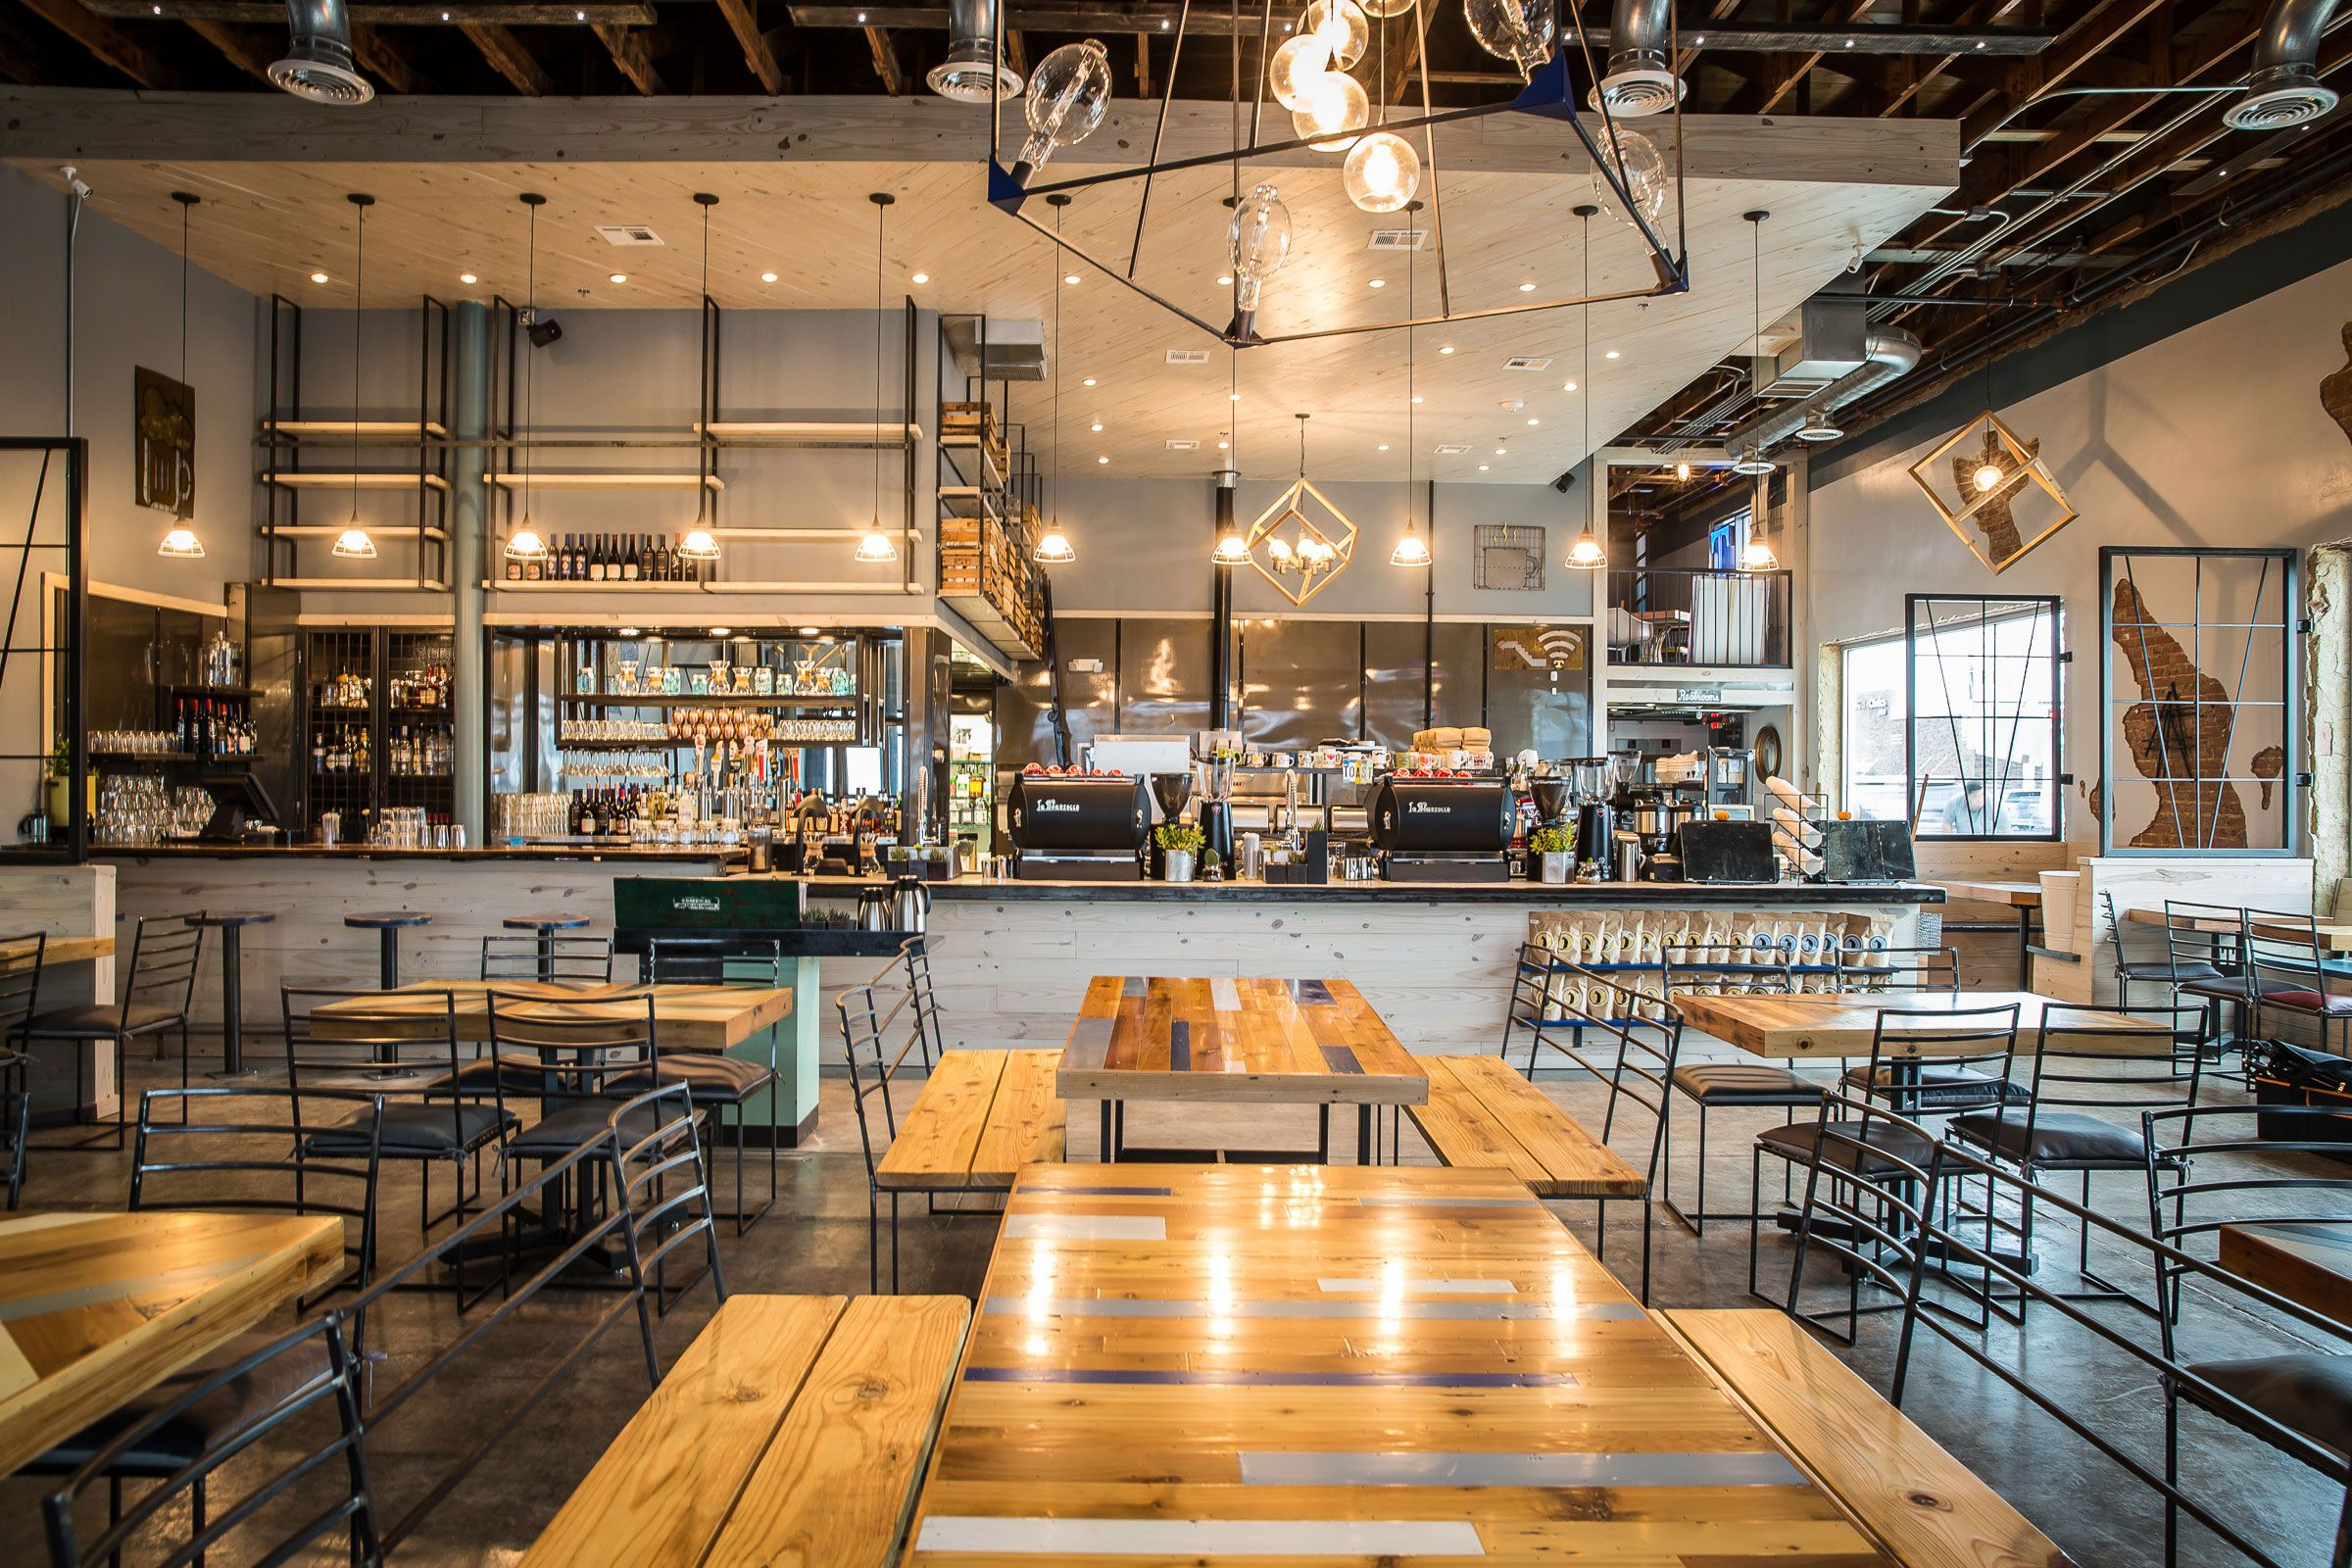 Toasted Is An Eatery And Bar Featuring Fancy A Toasts Located On